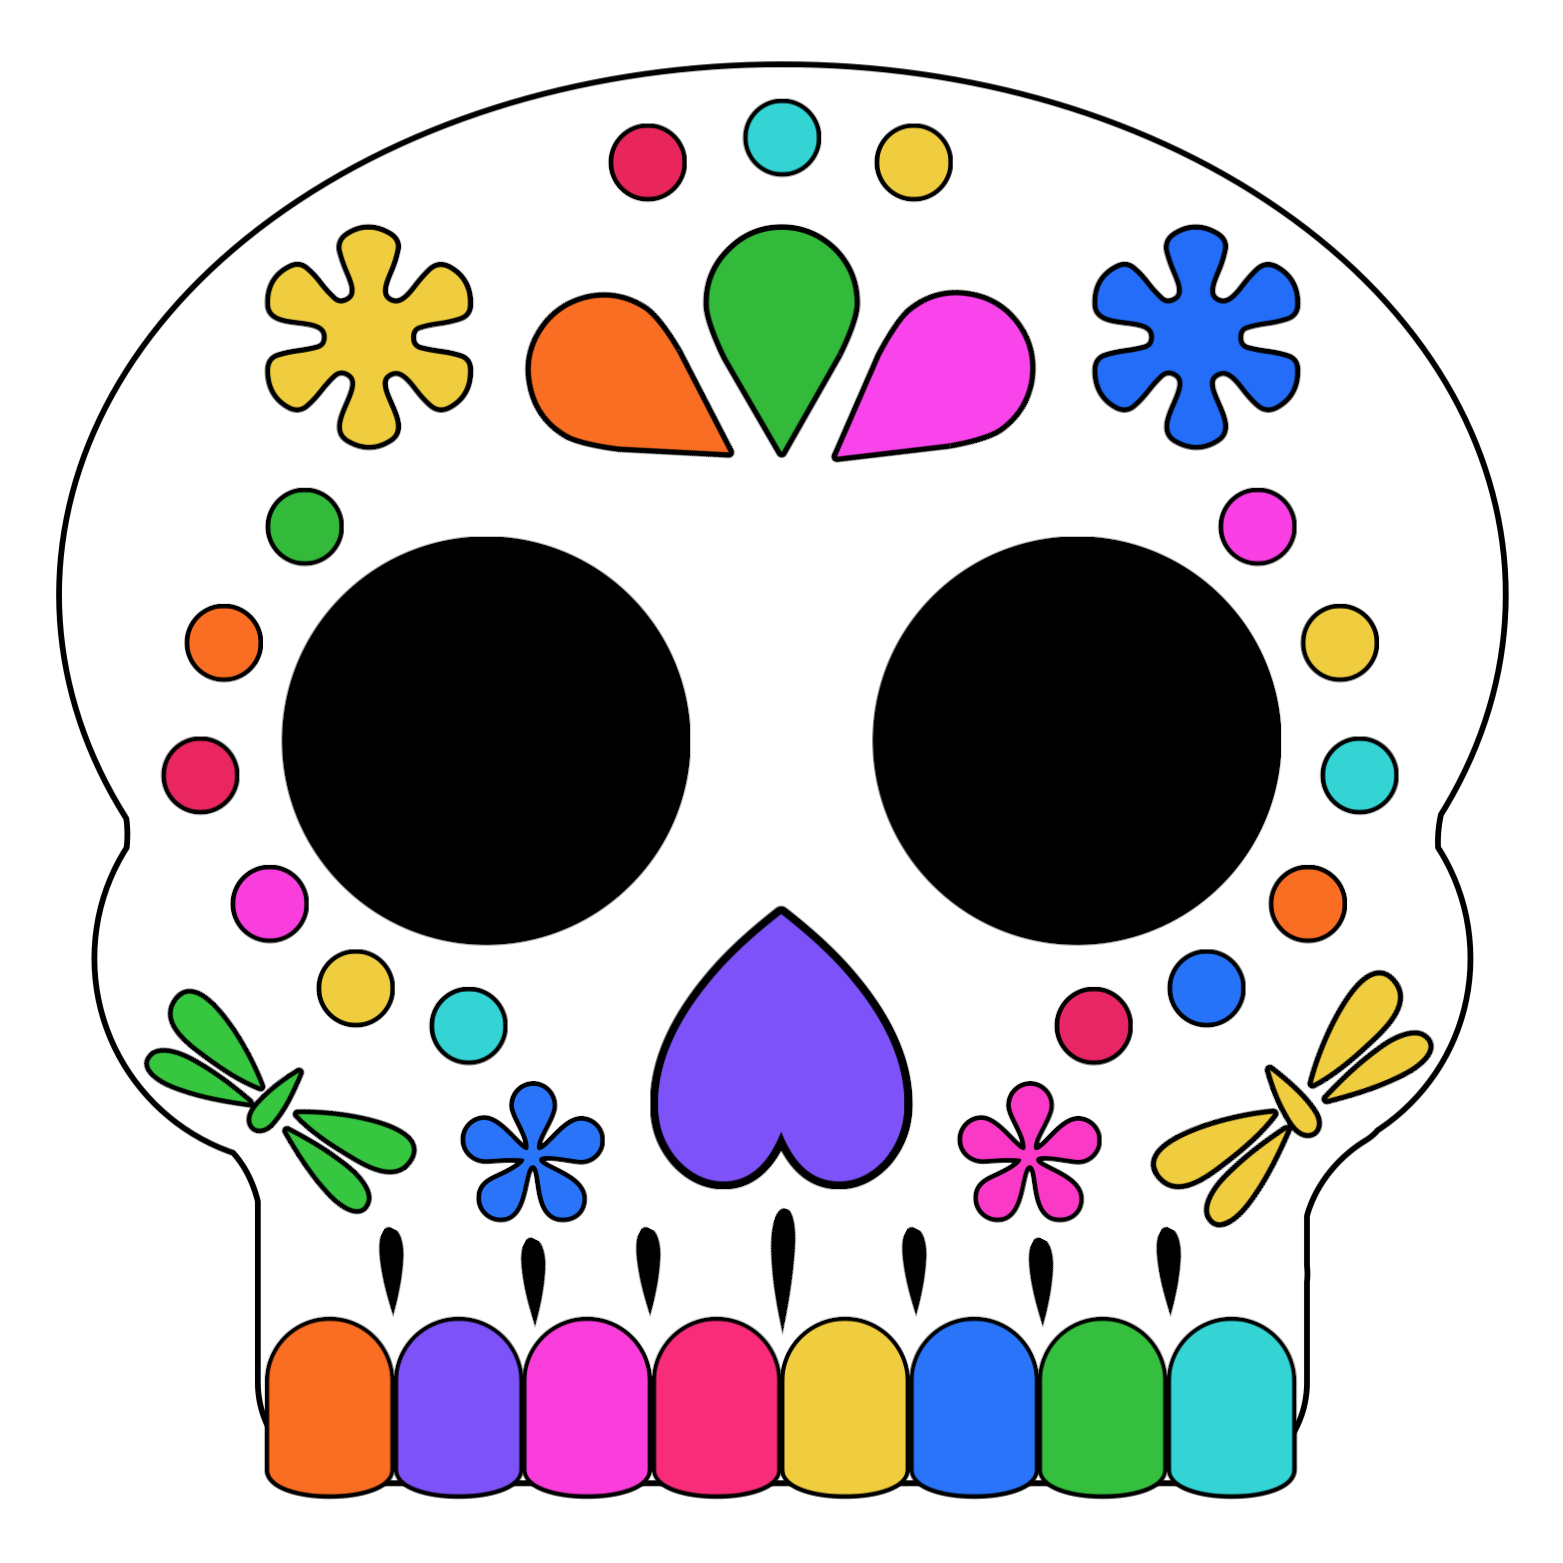 It is an image of Day of the Dead Printable Masks in traditional